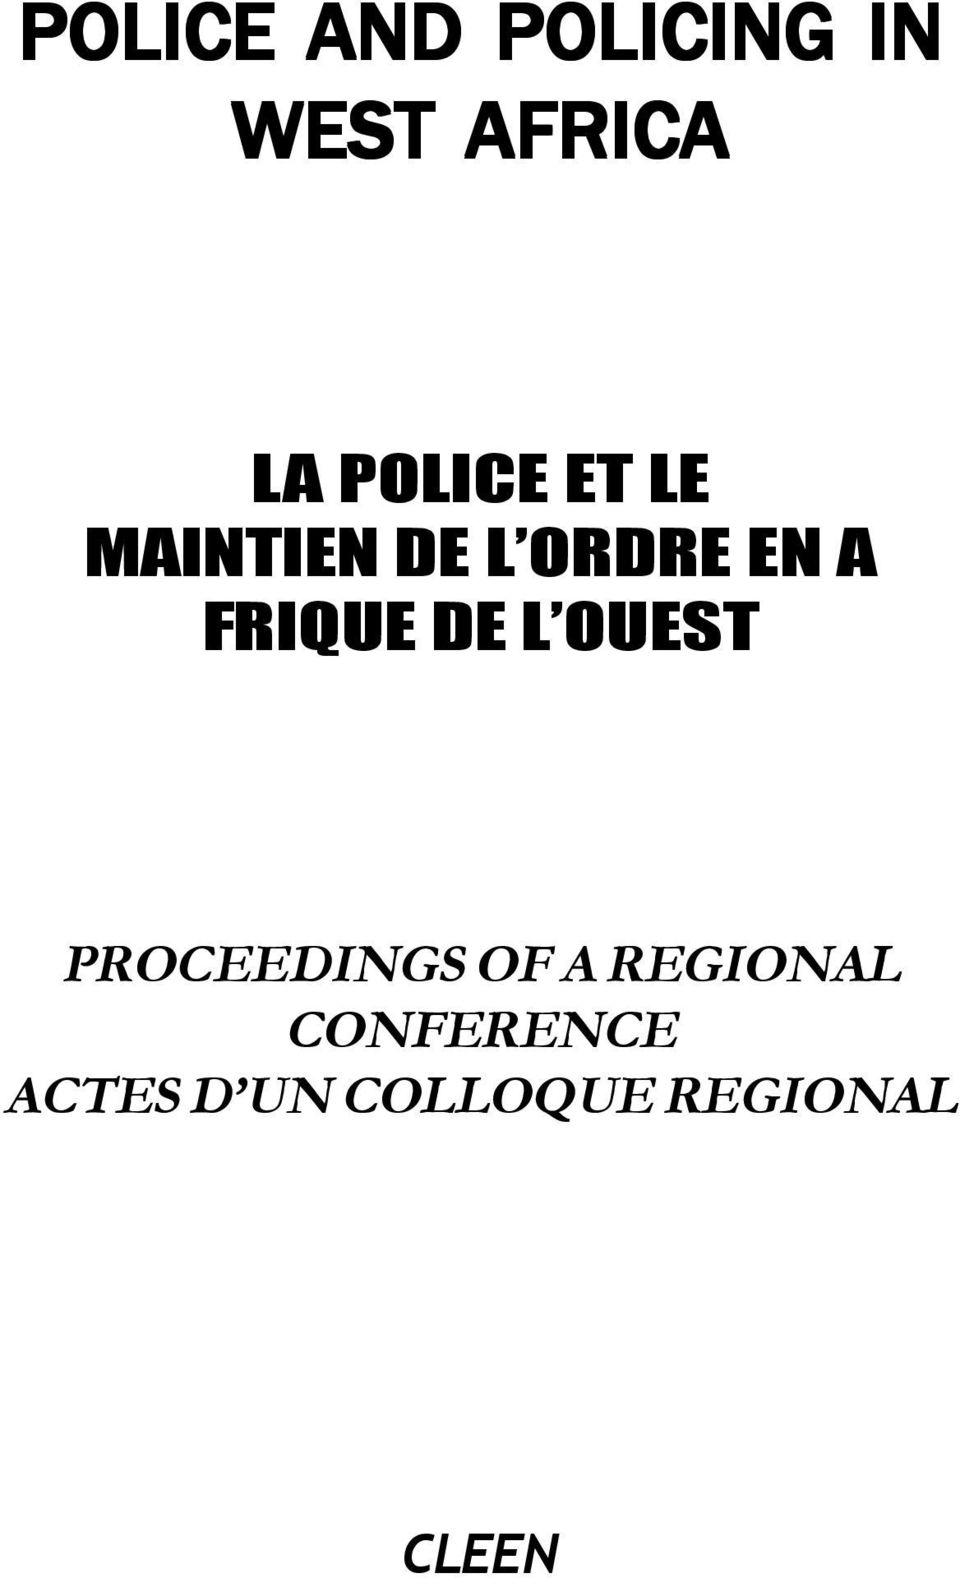 FRIQUE DE L OUEST PROCEEDINGS OF A